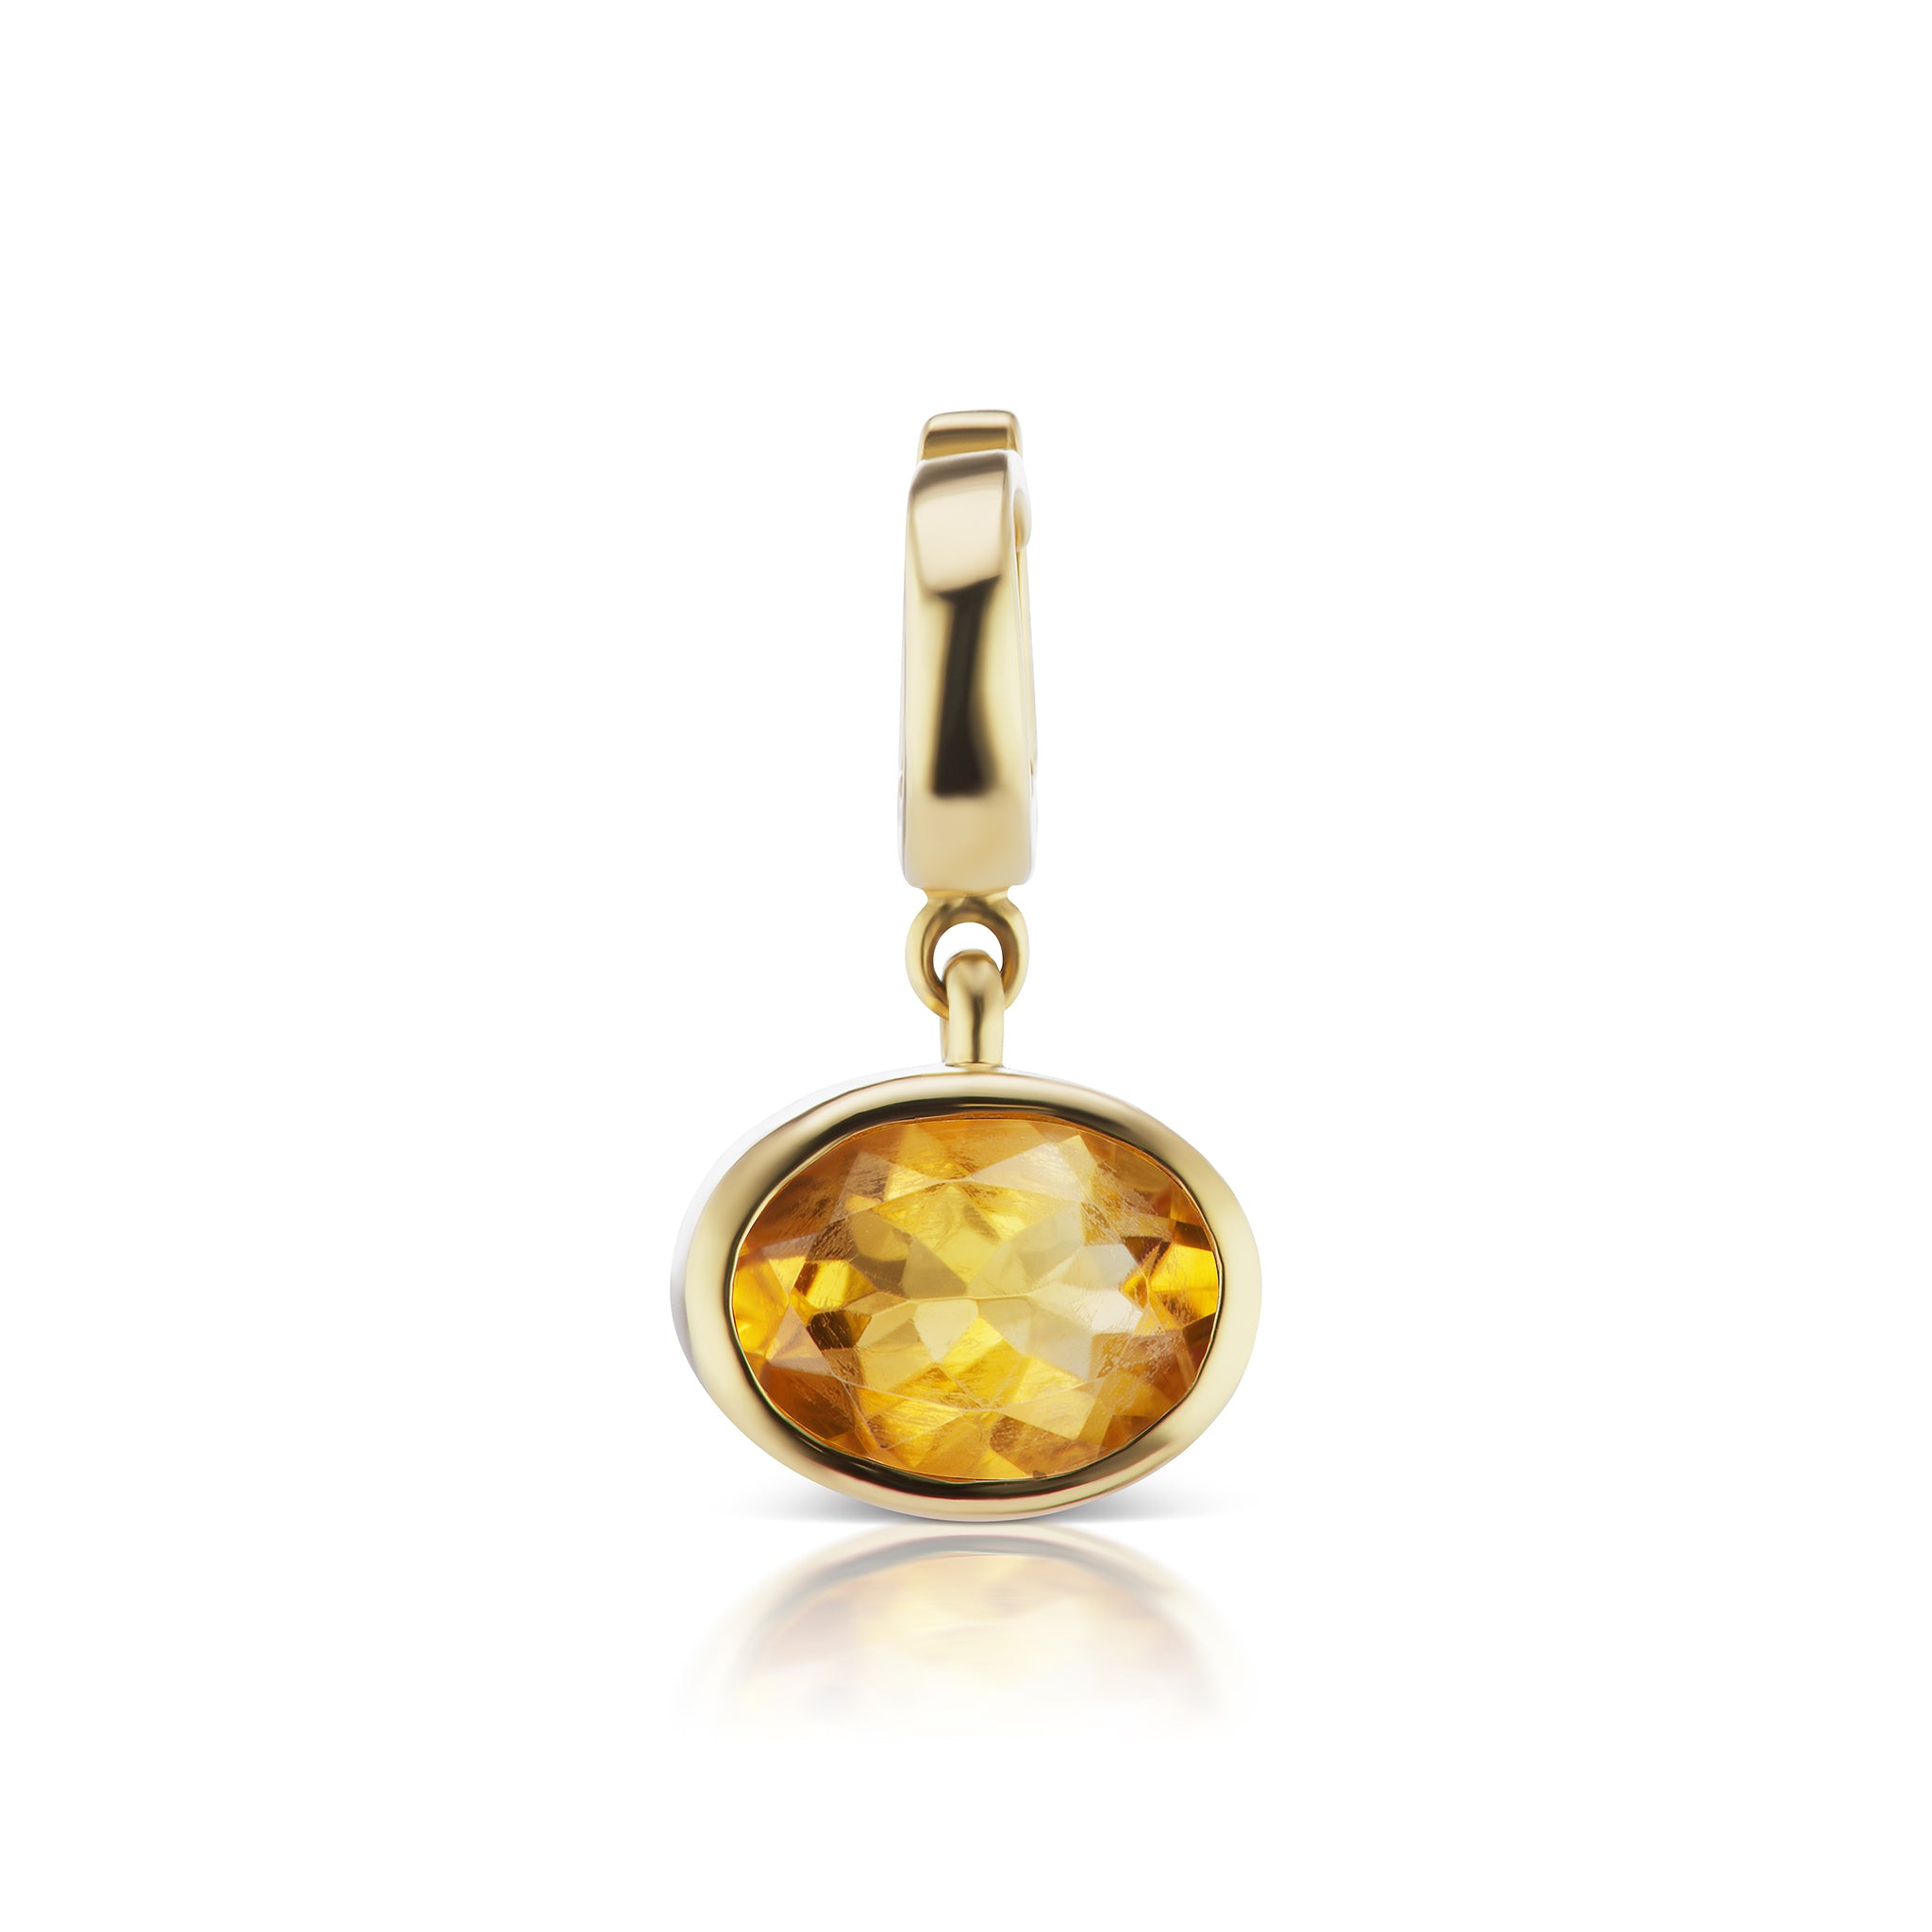 The Amber Charm